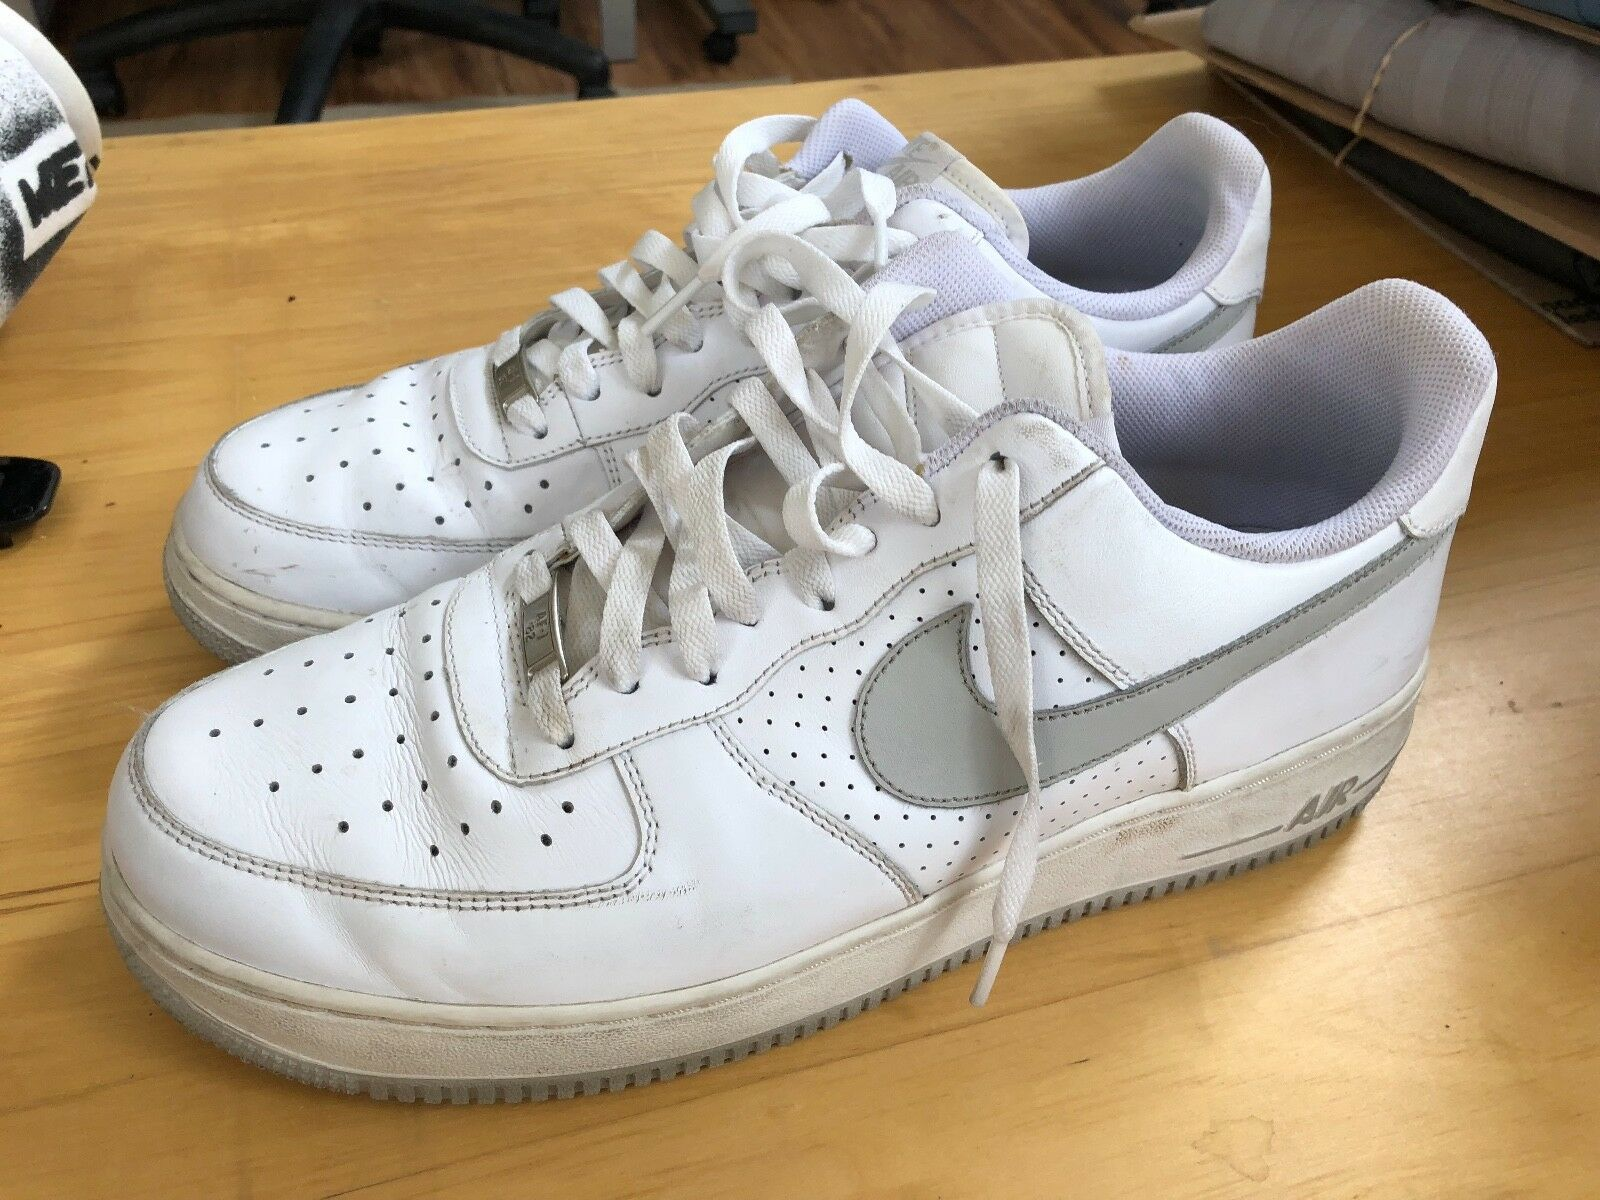 Cheap and beautiful fashion MENS PREOWNED NIKE AF1 '92 SIZE 12 #KUC331